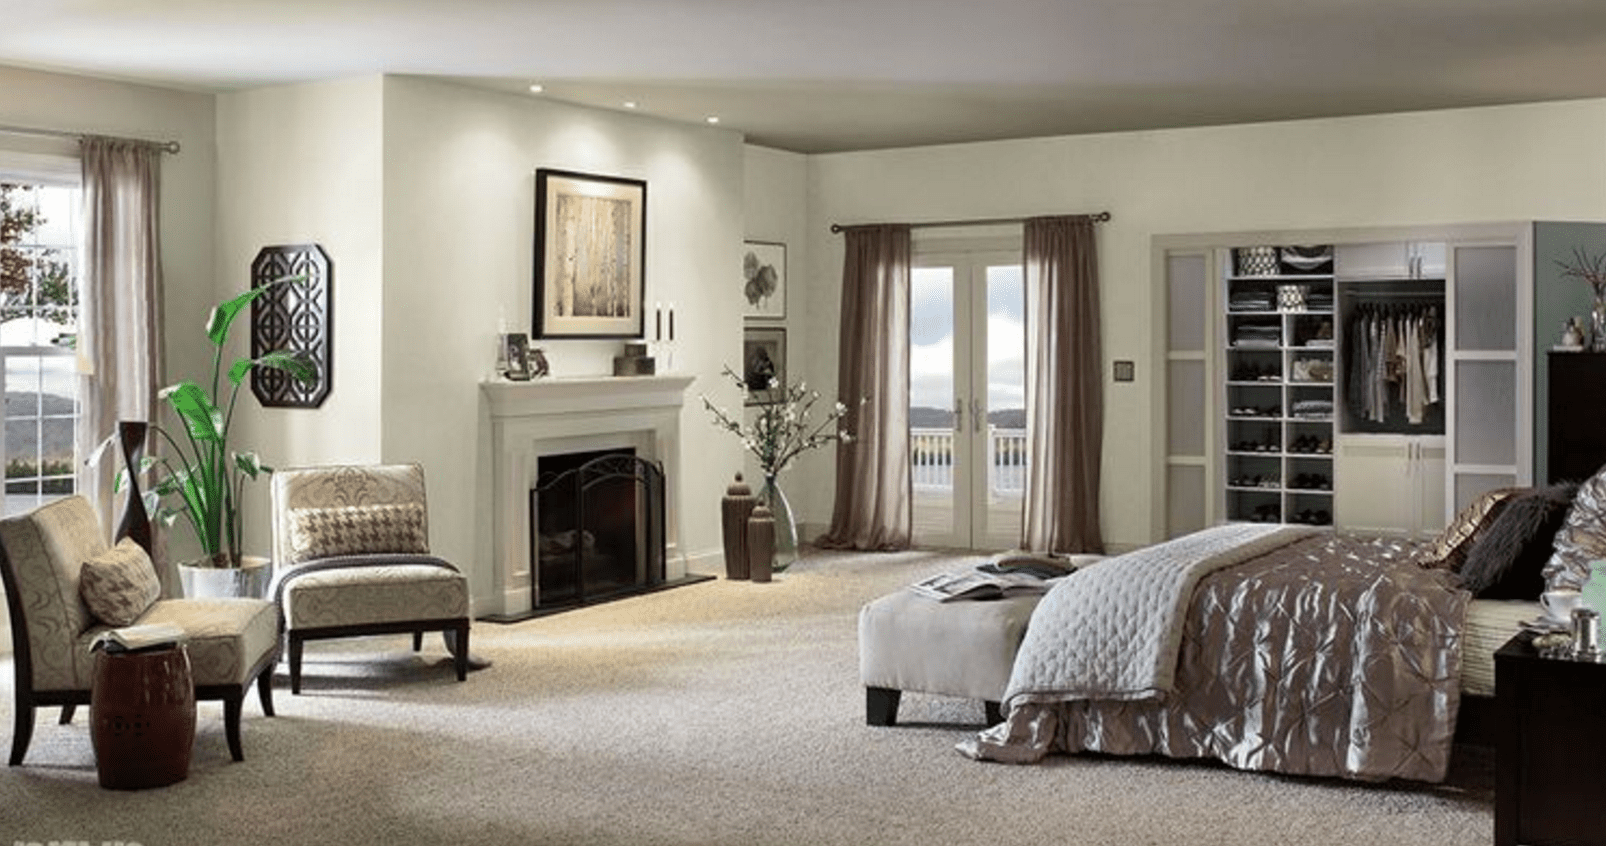 Living Room Paint Color Ideas With Wood Trim Small Spaces